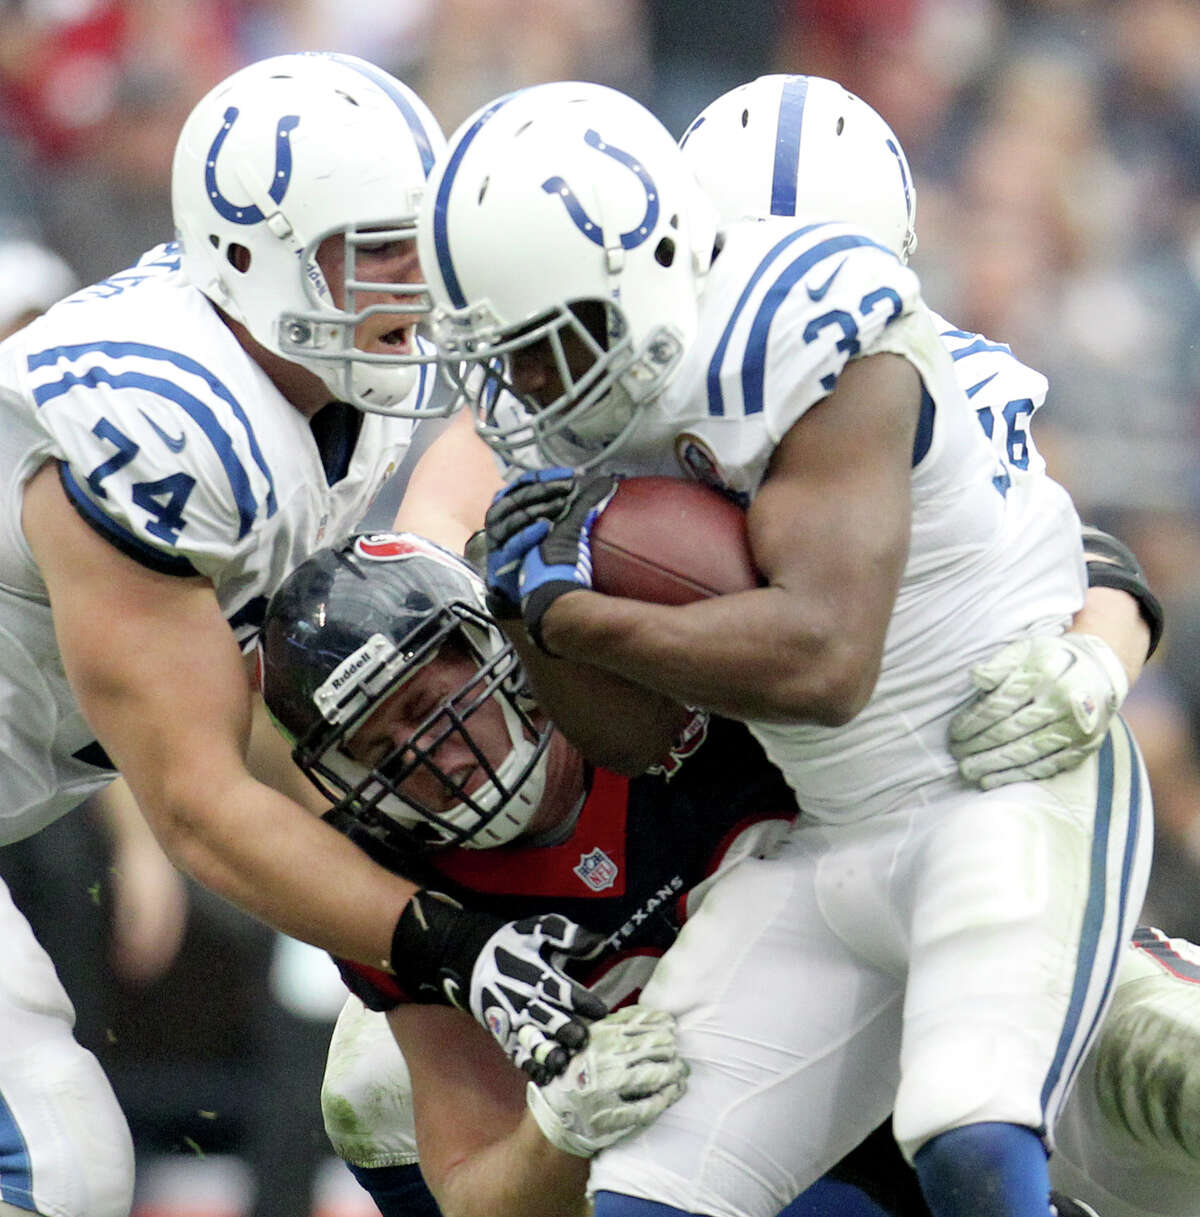 Indianapolis Colts running back Vick Ballard (33) is stopped by Houston Texans defensive end J.J. Watt (99) during the second quarter of an NFL football game at Reliant Stadium, Sunday, Dec. 16, 2012, in Houston.